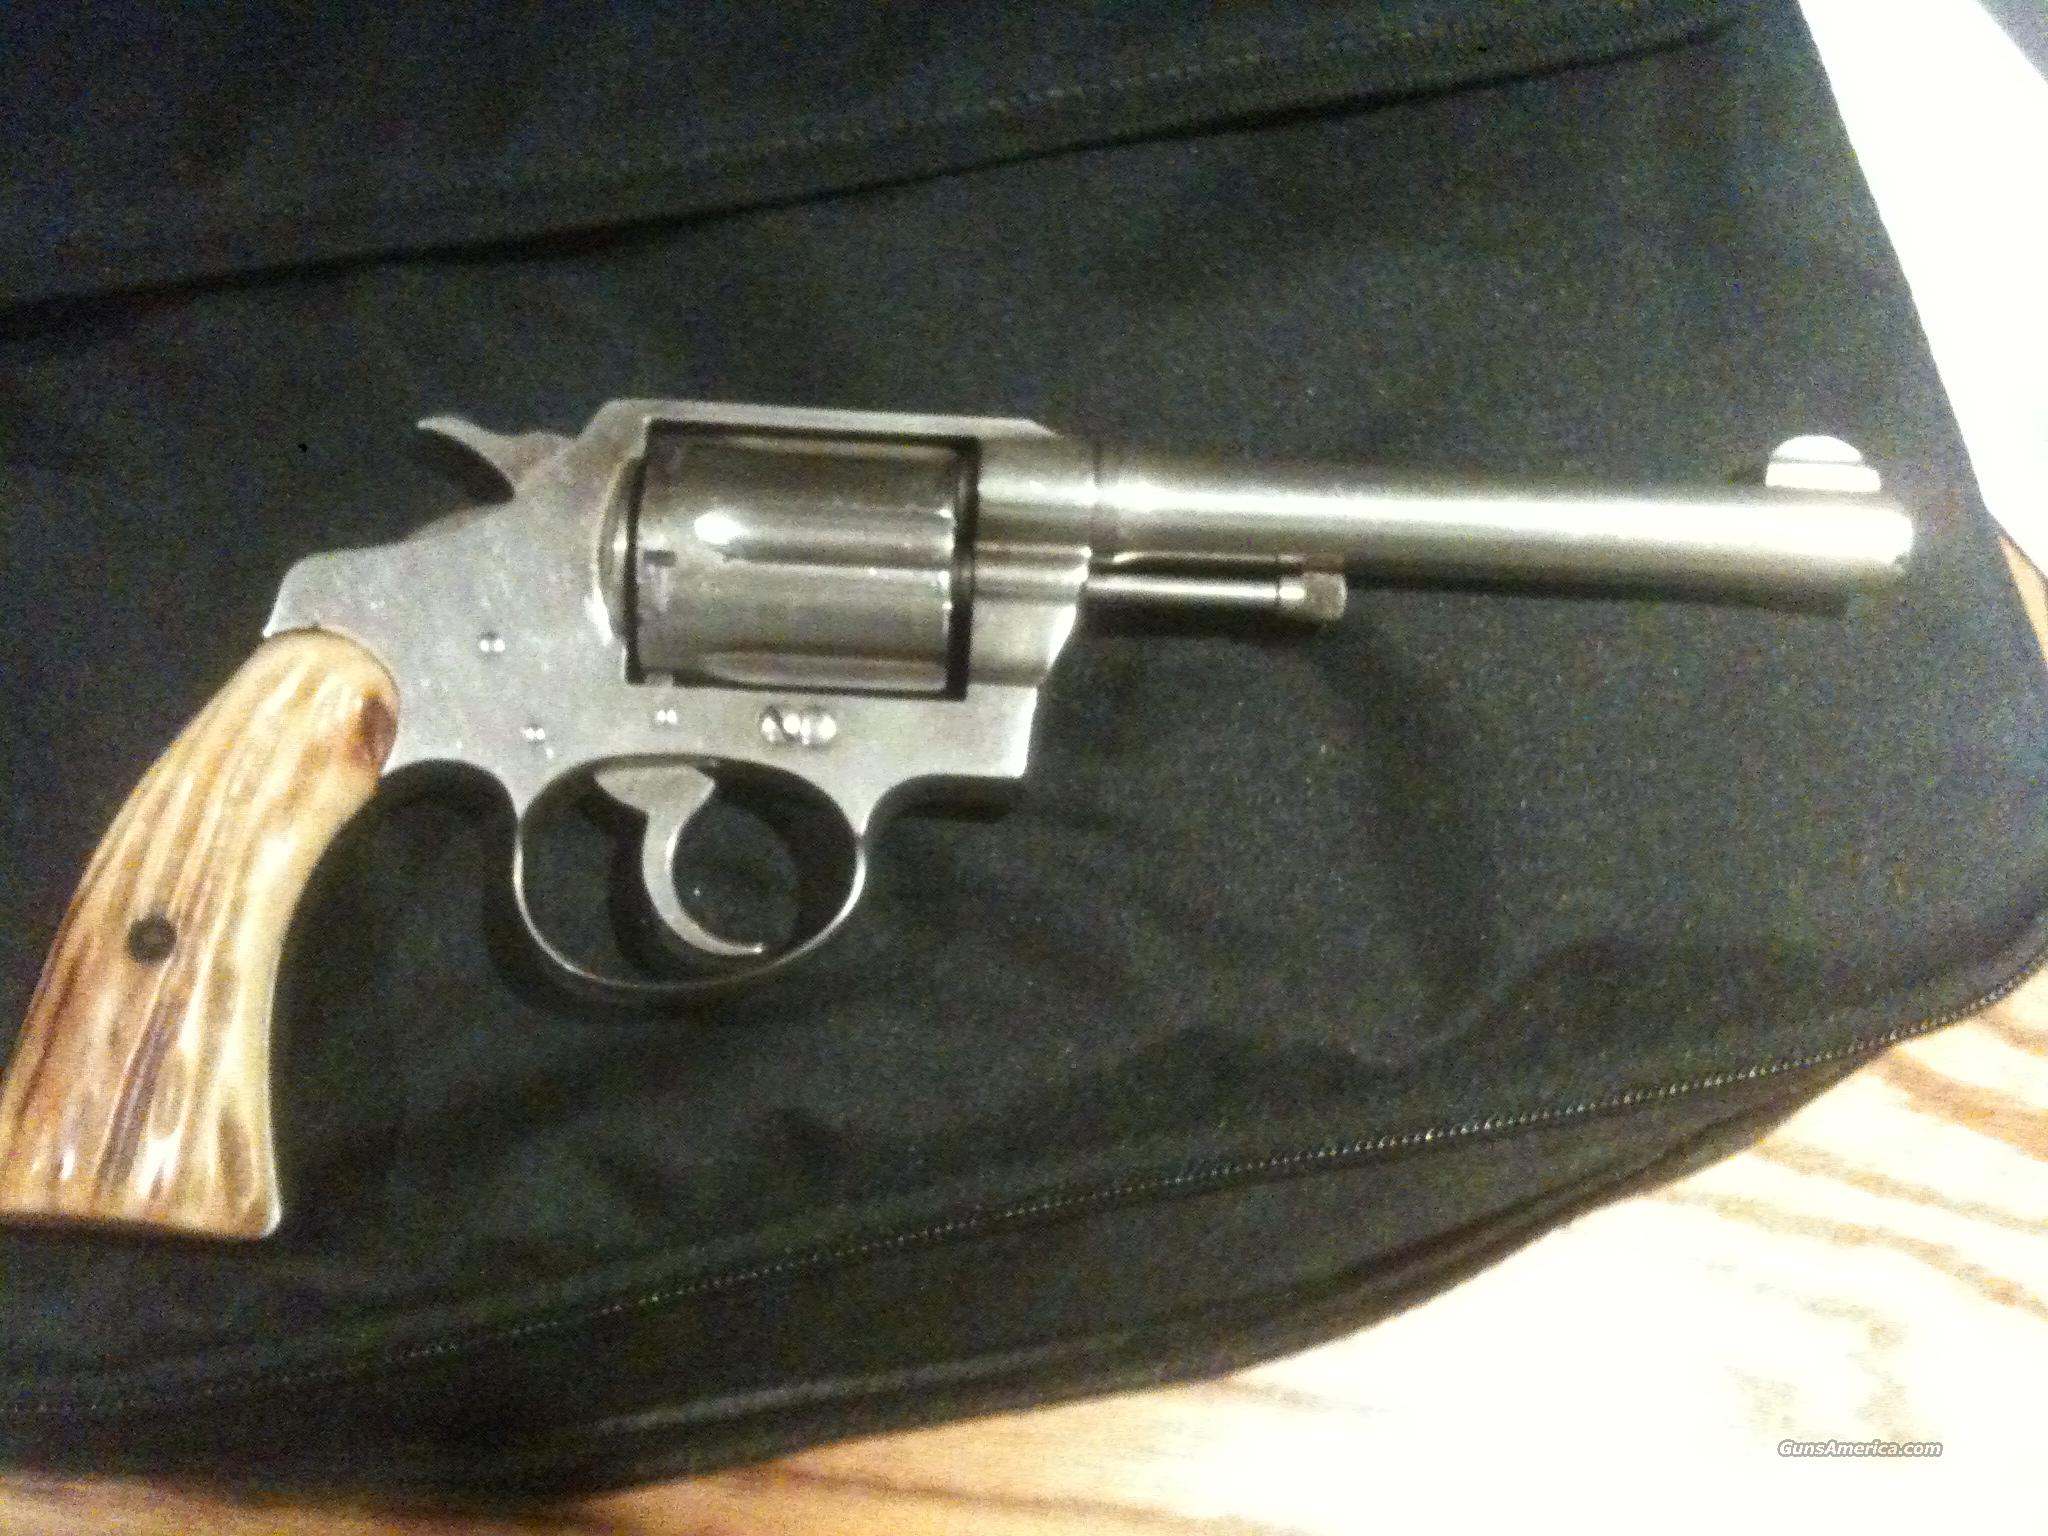 "COLT POLICE POSITIVE SPECIAL  32-20 WCF - FIRST ISSUE- 5"" BARREL - NICKEL PLATED - CIRA. 1926 - GOOD CONDITION - FAMILY OWNED  Guns > Pistols > Colt Double Action Revolvers- Pre-1945"